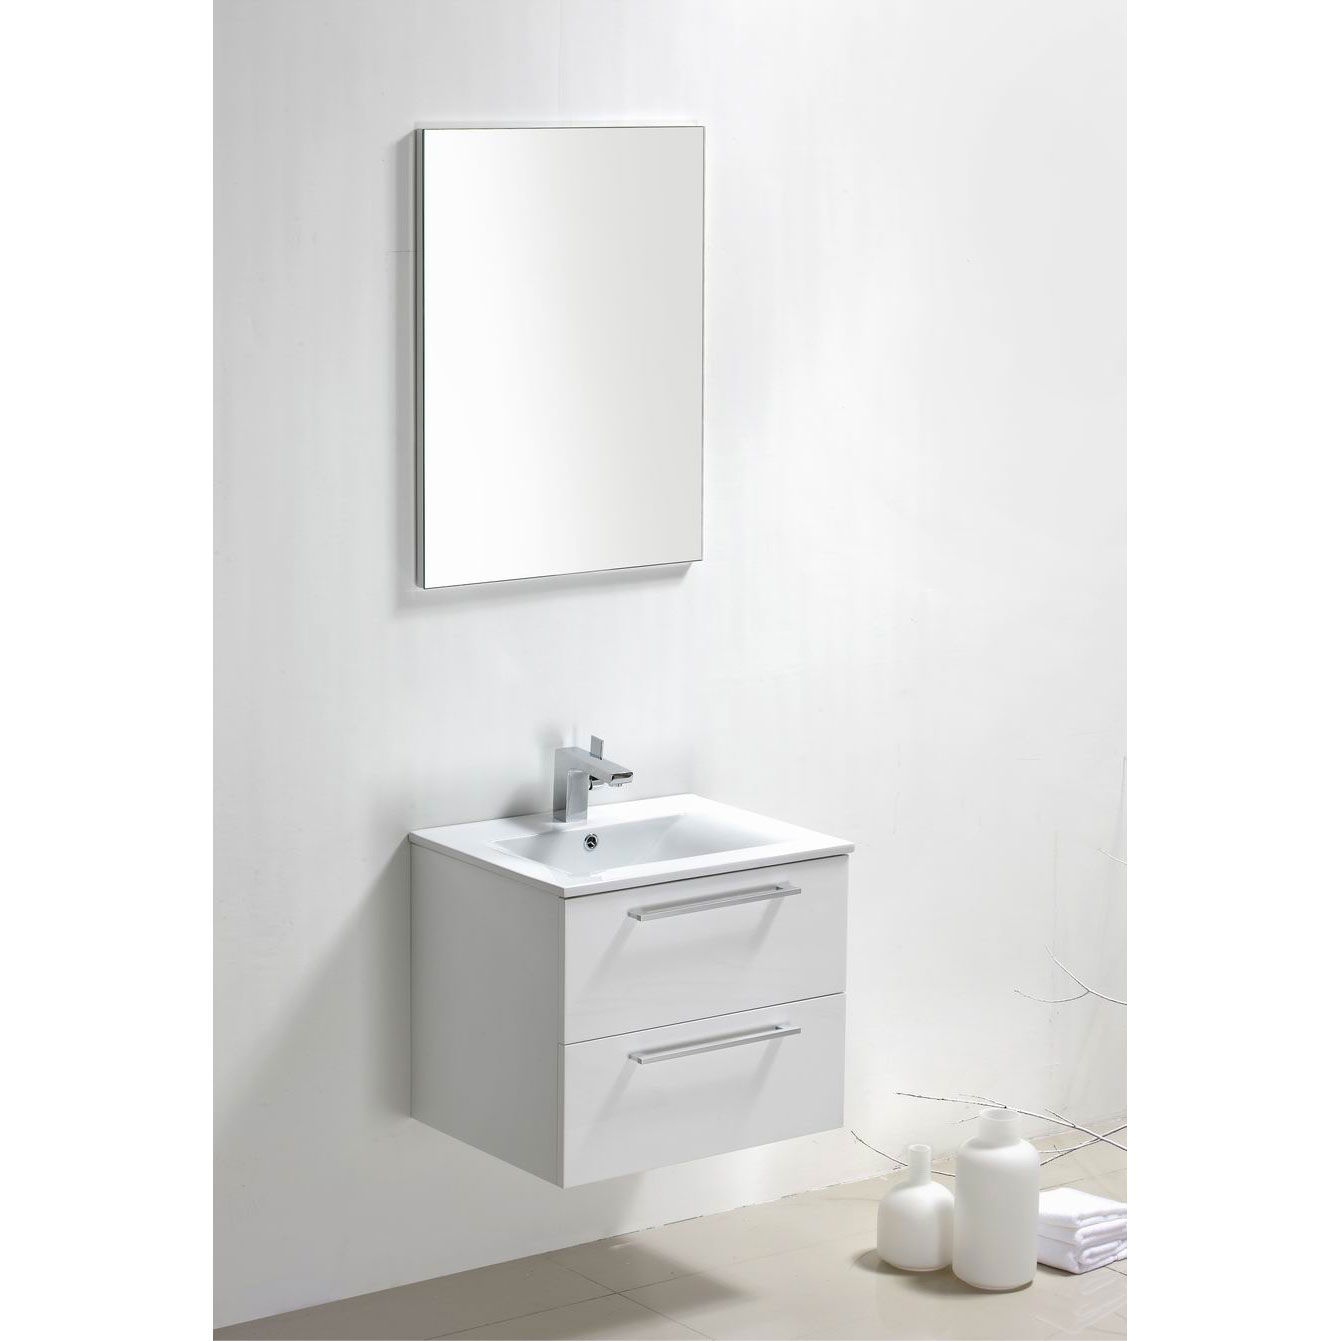 24 White Bathroom Vanity buy caen 24 inch wall-mount modern bathroom vanity set high glossy